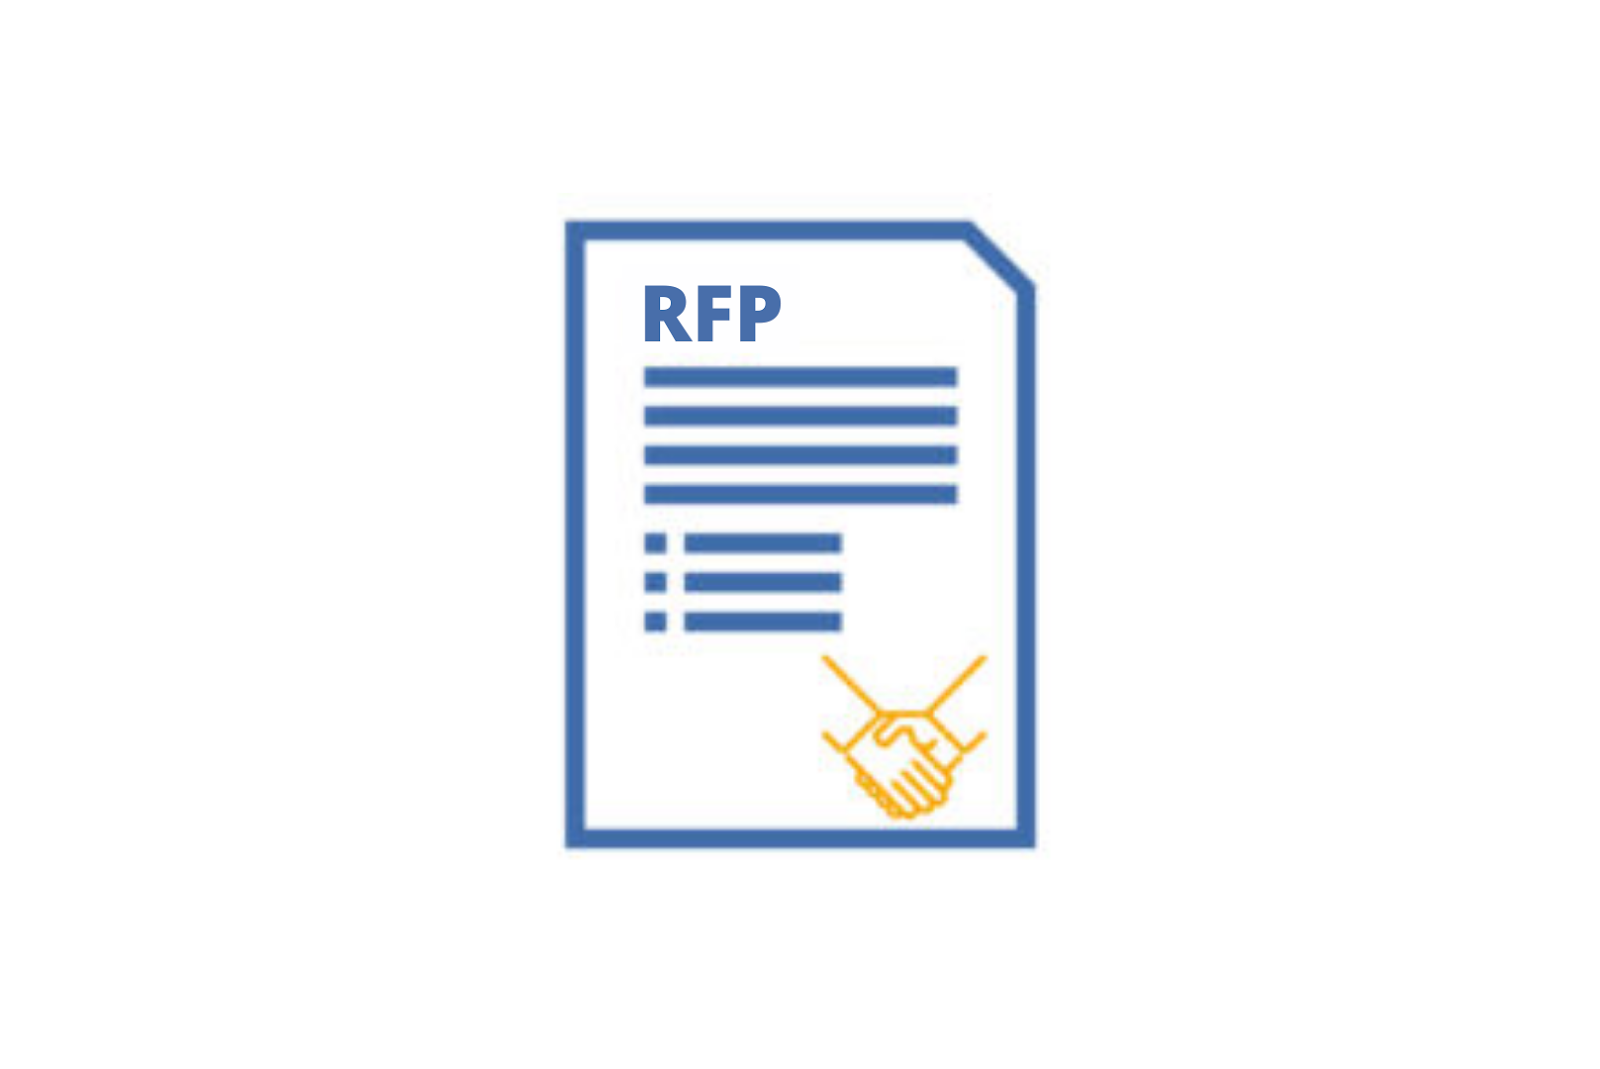 RFP for software development